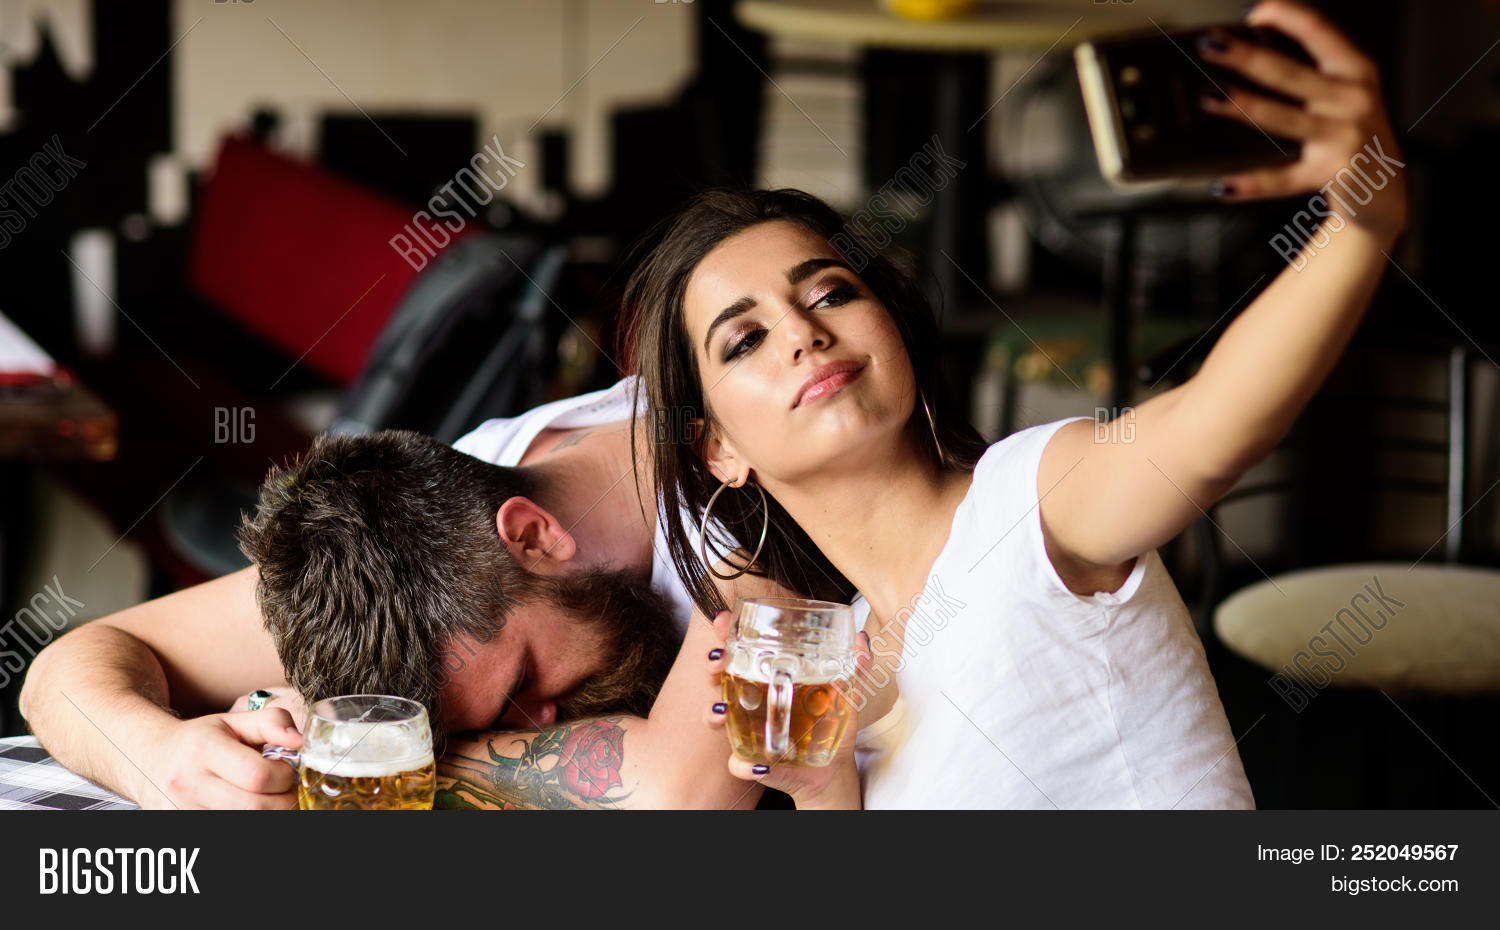 alcohol,ale,anniversary,appear,asleep,beer,boyfriend,call,celebrate,celebration,conferencing,couple,draft,drink,drunk,event,fall,friend,friendship,full,fun,girl,girlfriend,glass,great,guy,he,hipster,holiday,in,love,make,man,online,party,photo,pretty,refreshment,relationship,remember,selfie,stylish,summer,table,take,too,video,weak,woman,young